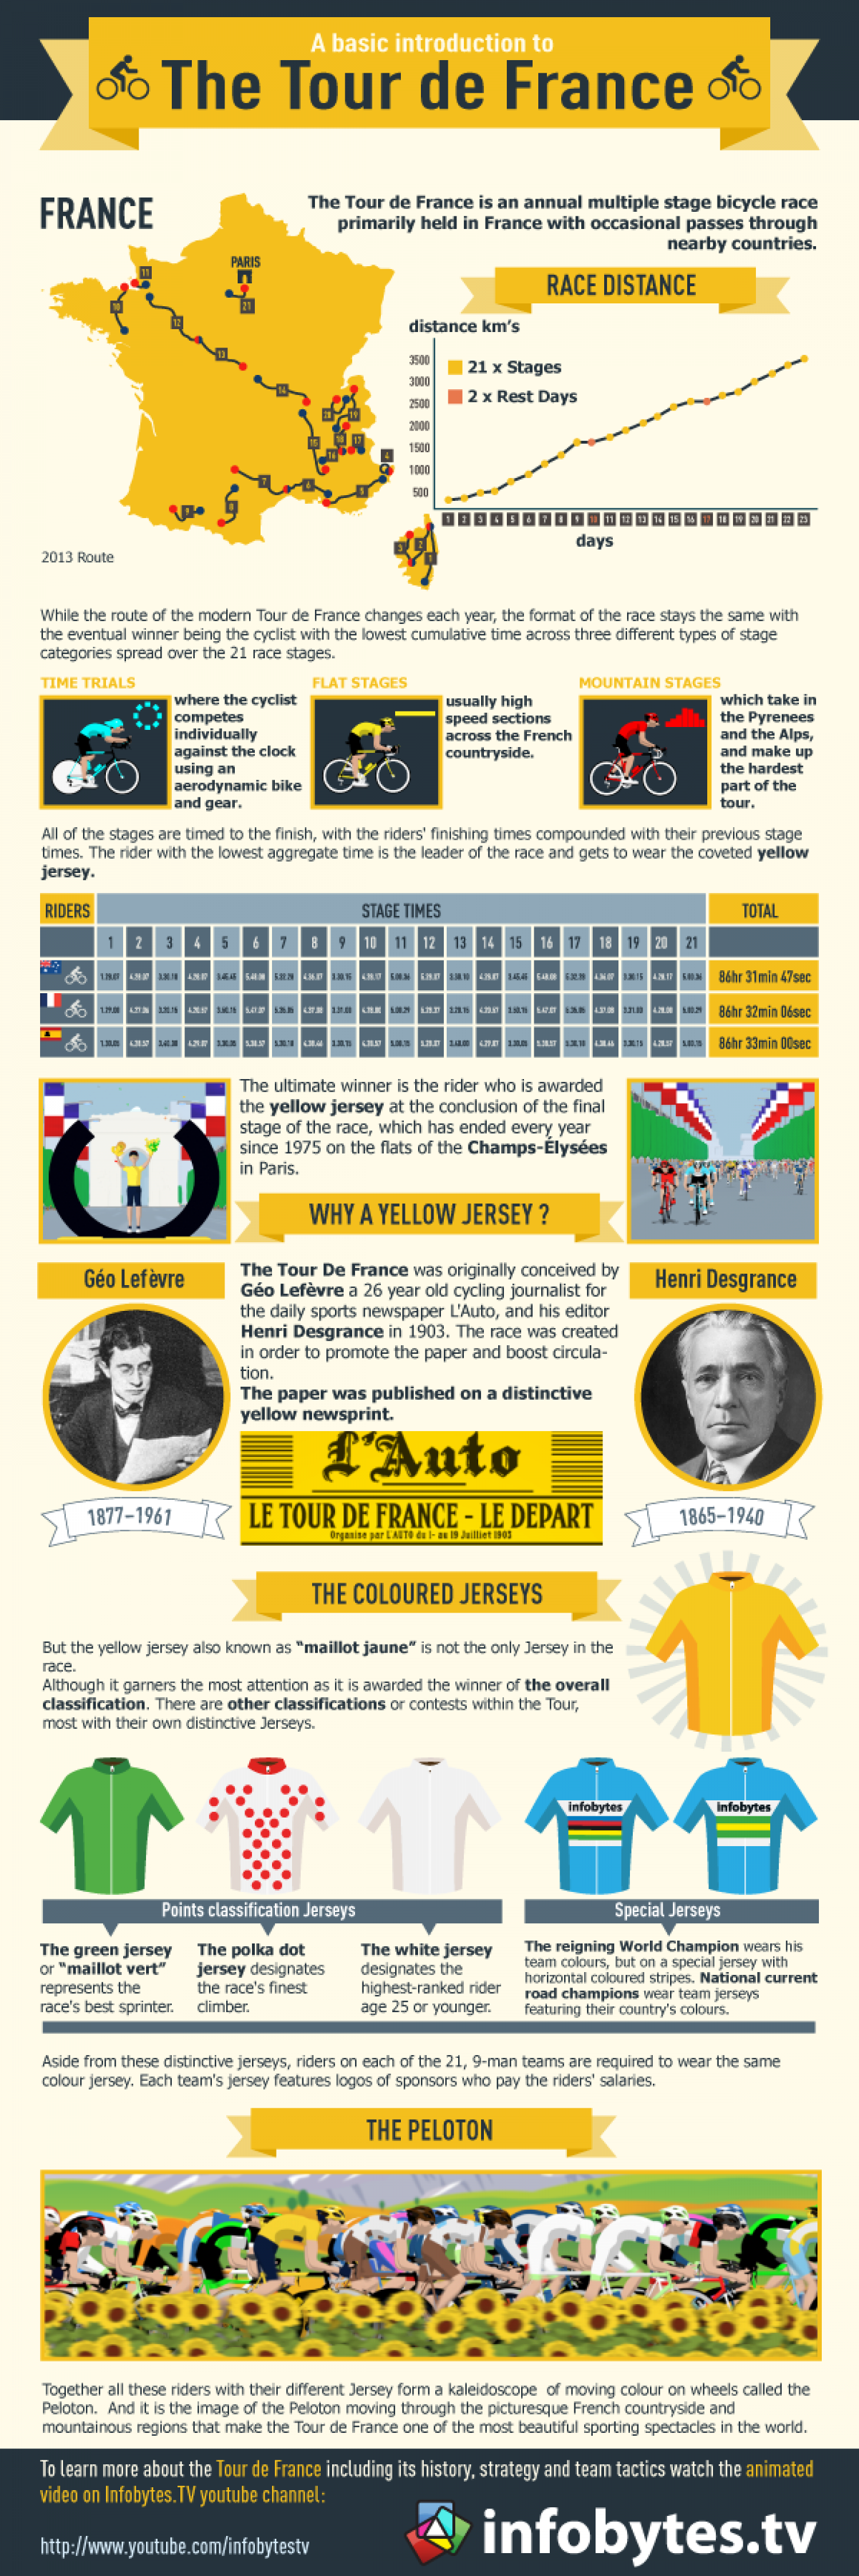 "A basic introduction to ""The Tour de France"" Infographic"